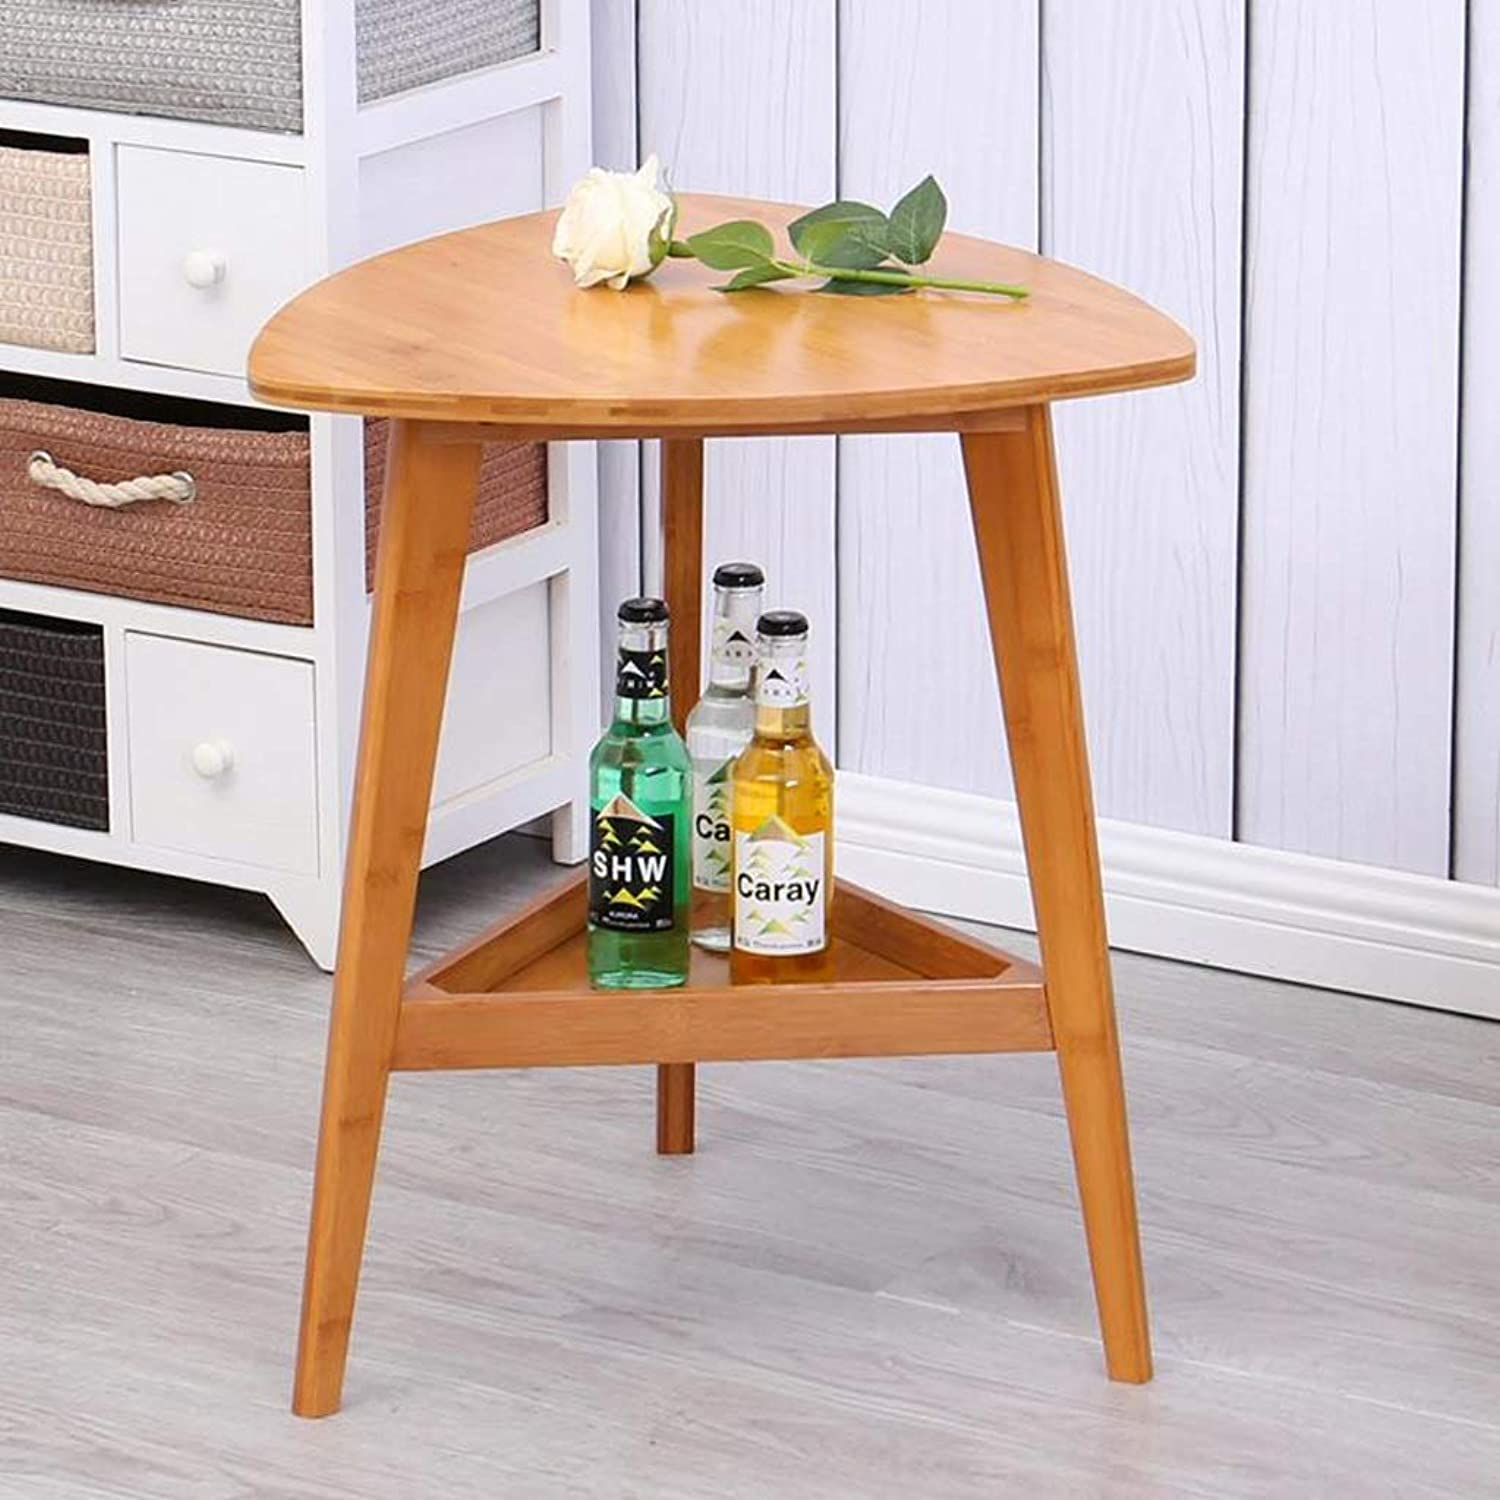 End Table, Double-Layer Triangular Solid Wood Sofa Side Table Coffee Table Small Living Room Table